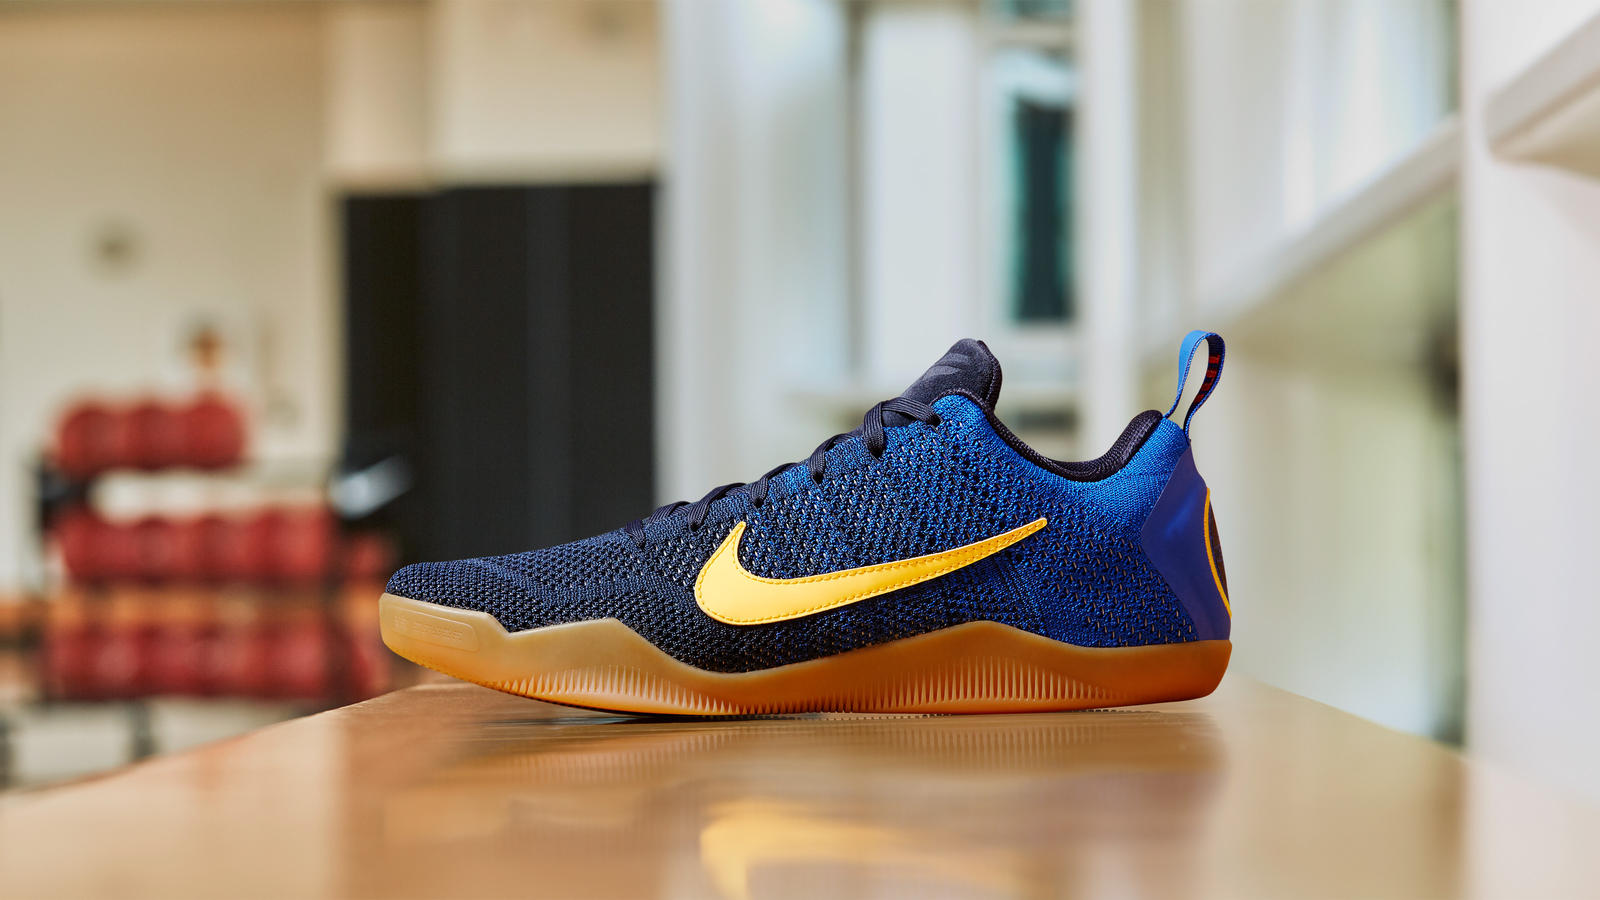 NIKE_NEWS_SNEAKER_FEED_KB_BLUE_0016_hd_1600